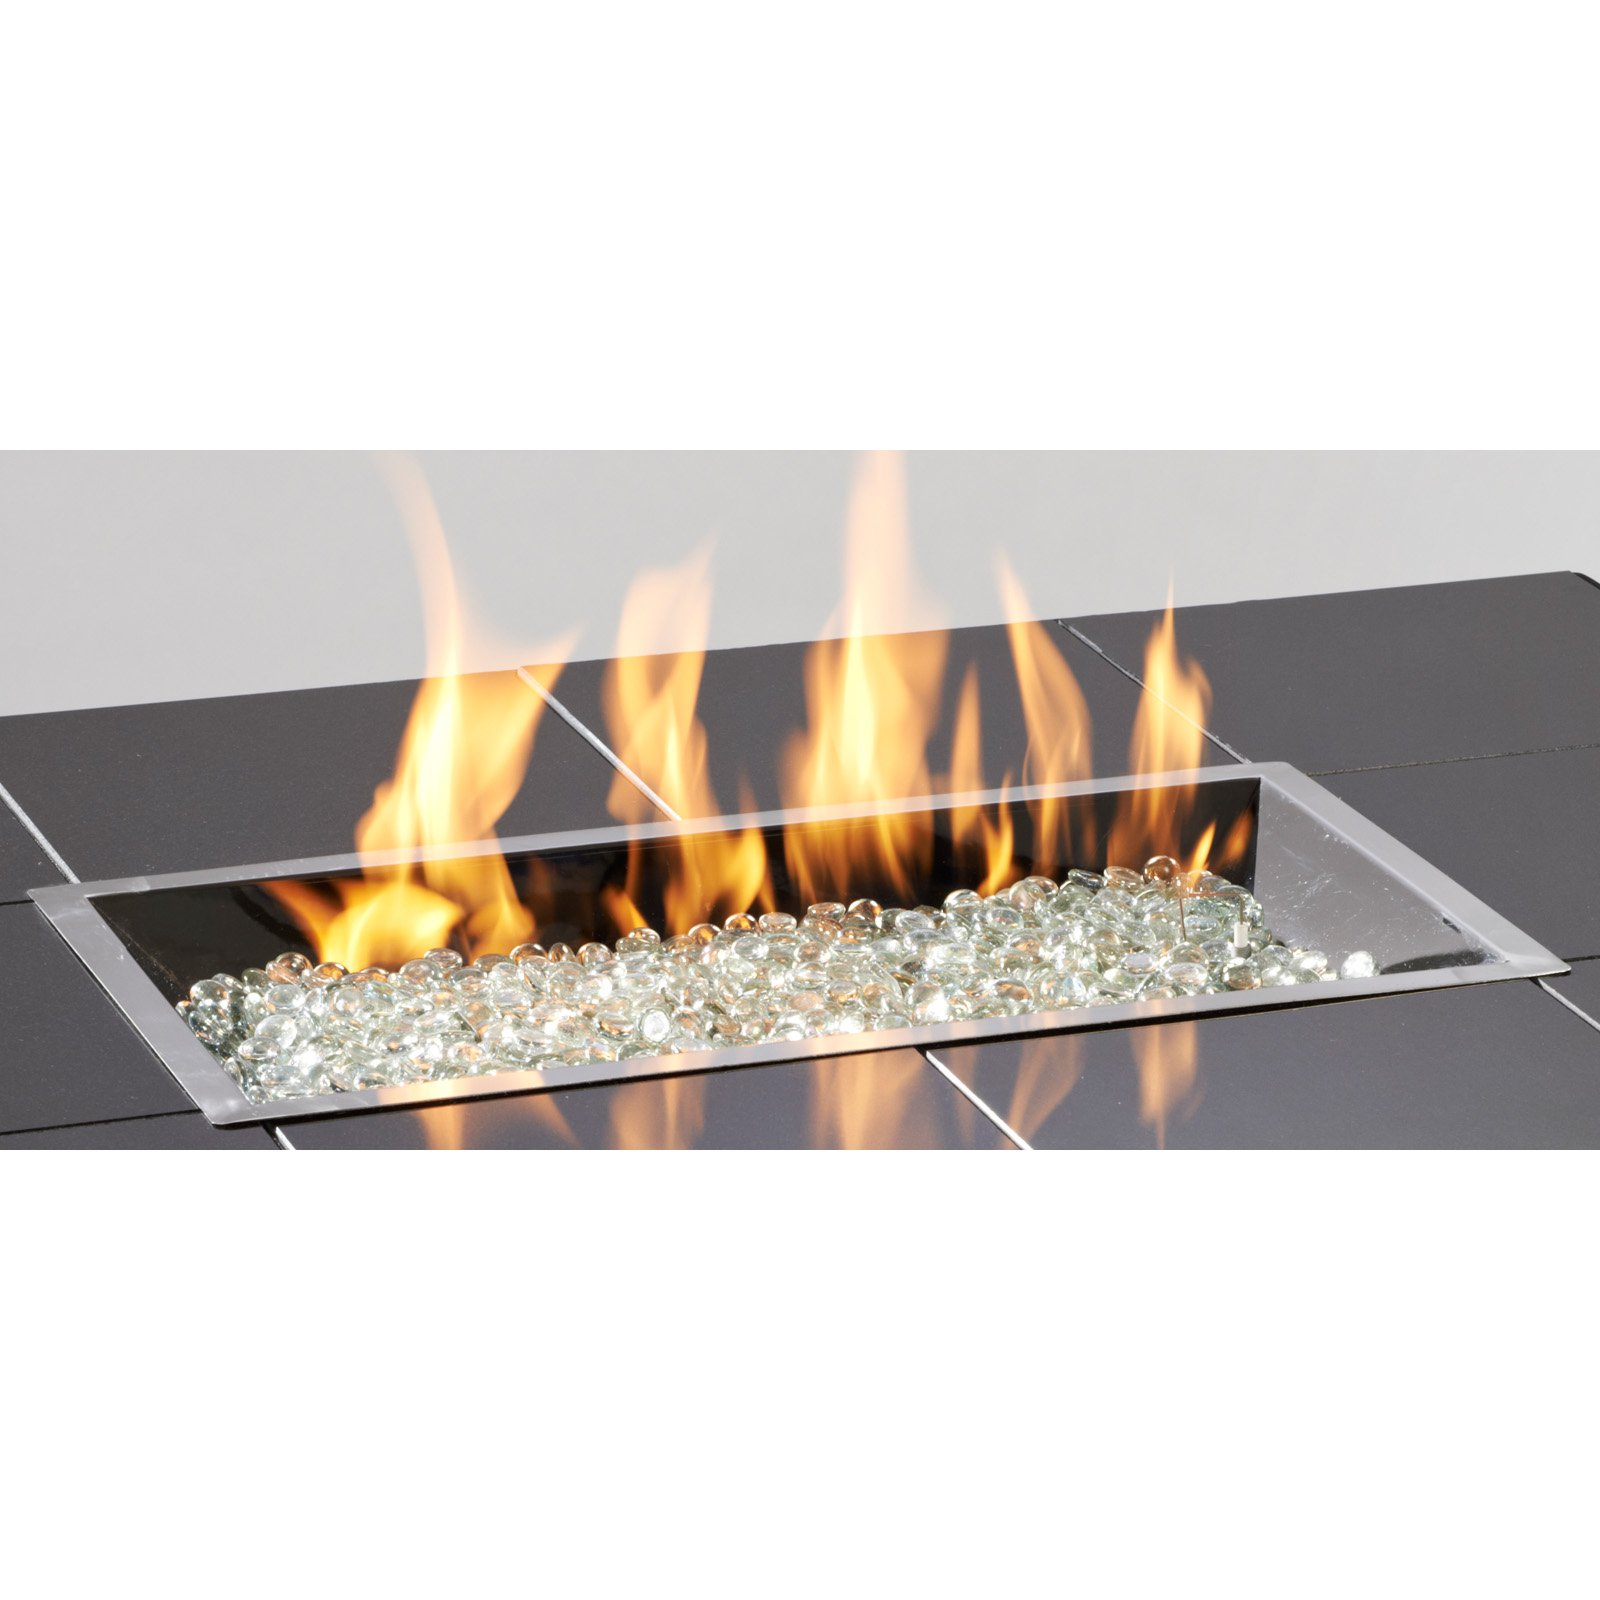 Outdoor GreatRoom 12 x 24 in. Burner with Glass Fire Gems